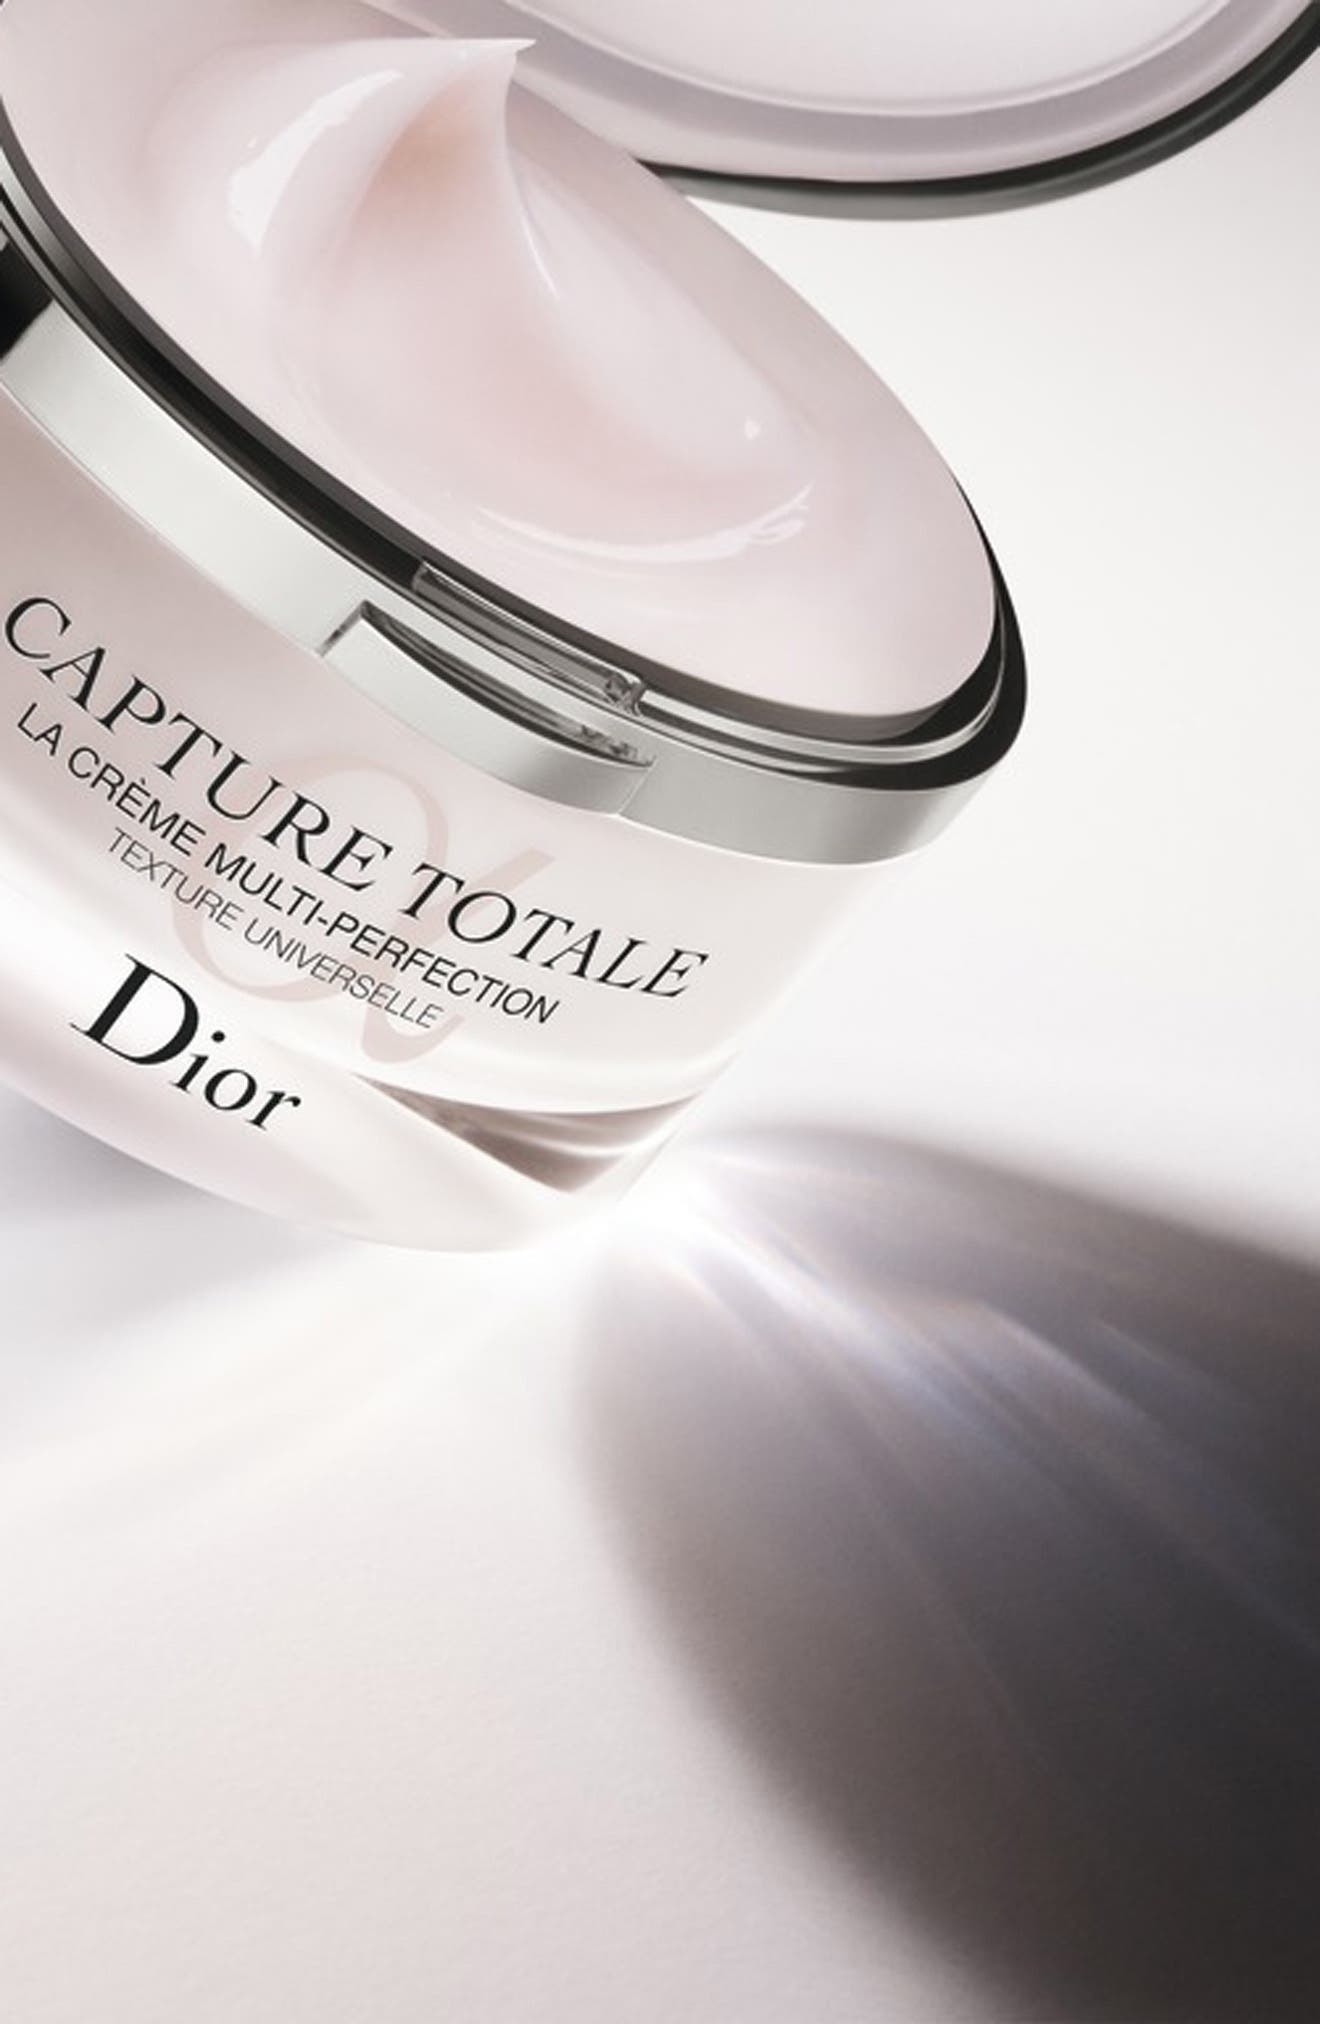 Capture Totale - Light Texture Multi-Perfection Creme Refill,                             Alternate thumbnail 2, color,                             NO COLOR